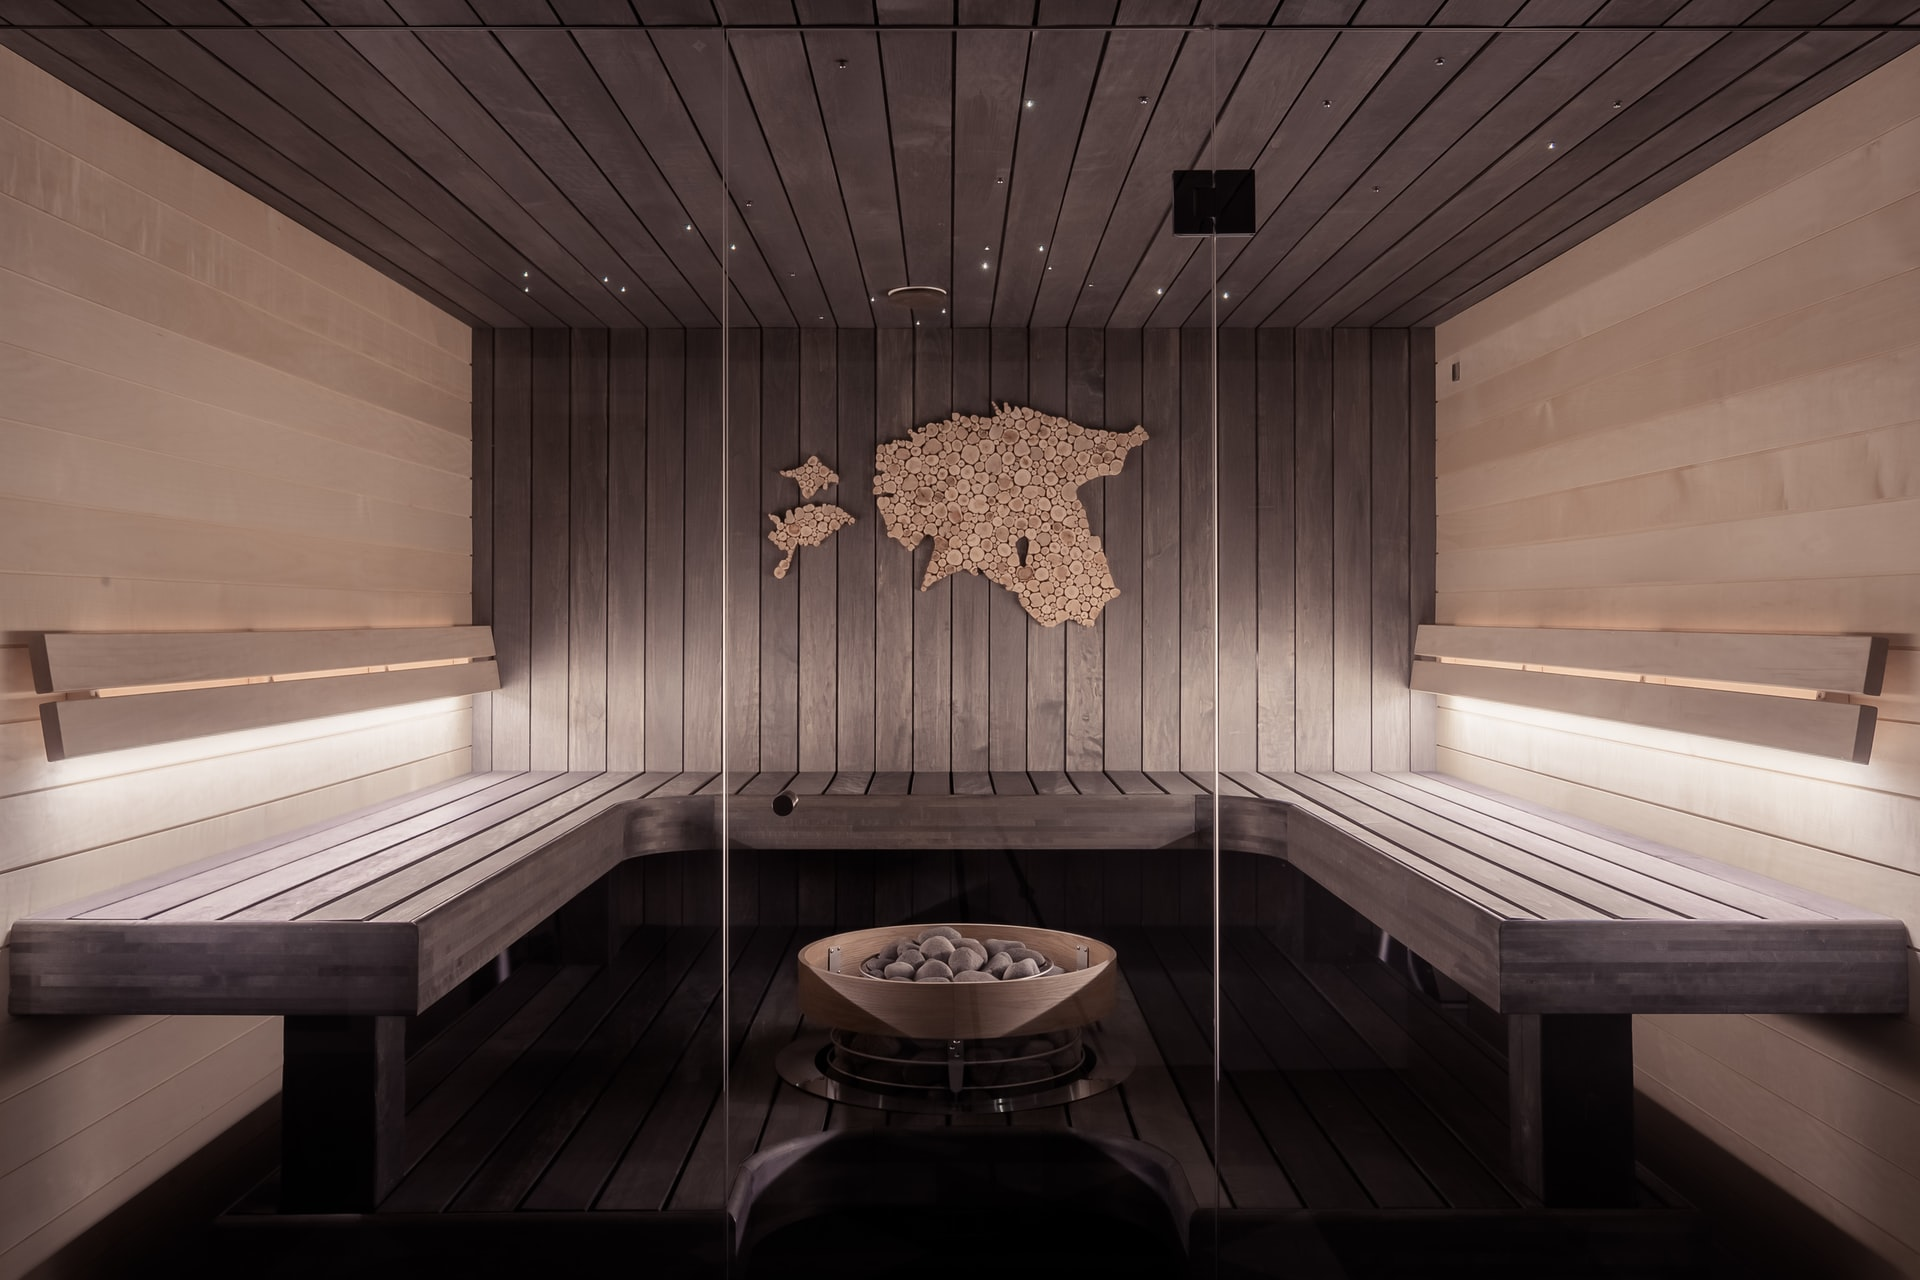 Sauna Trends Guide Header Image